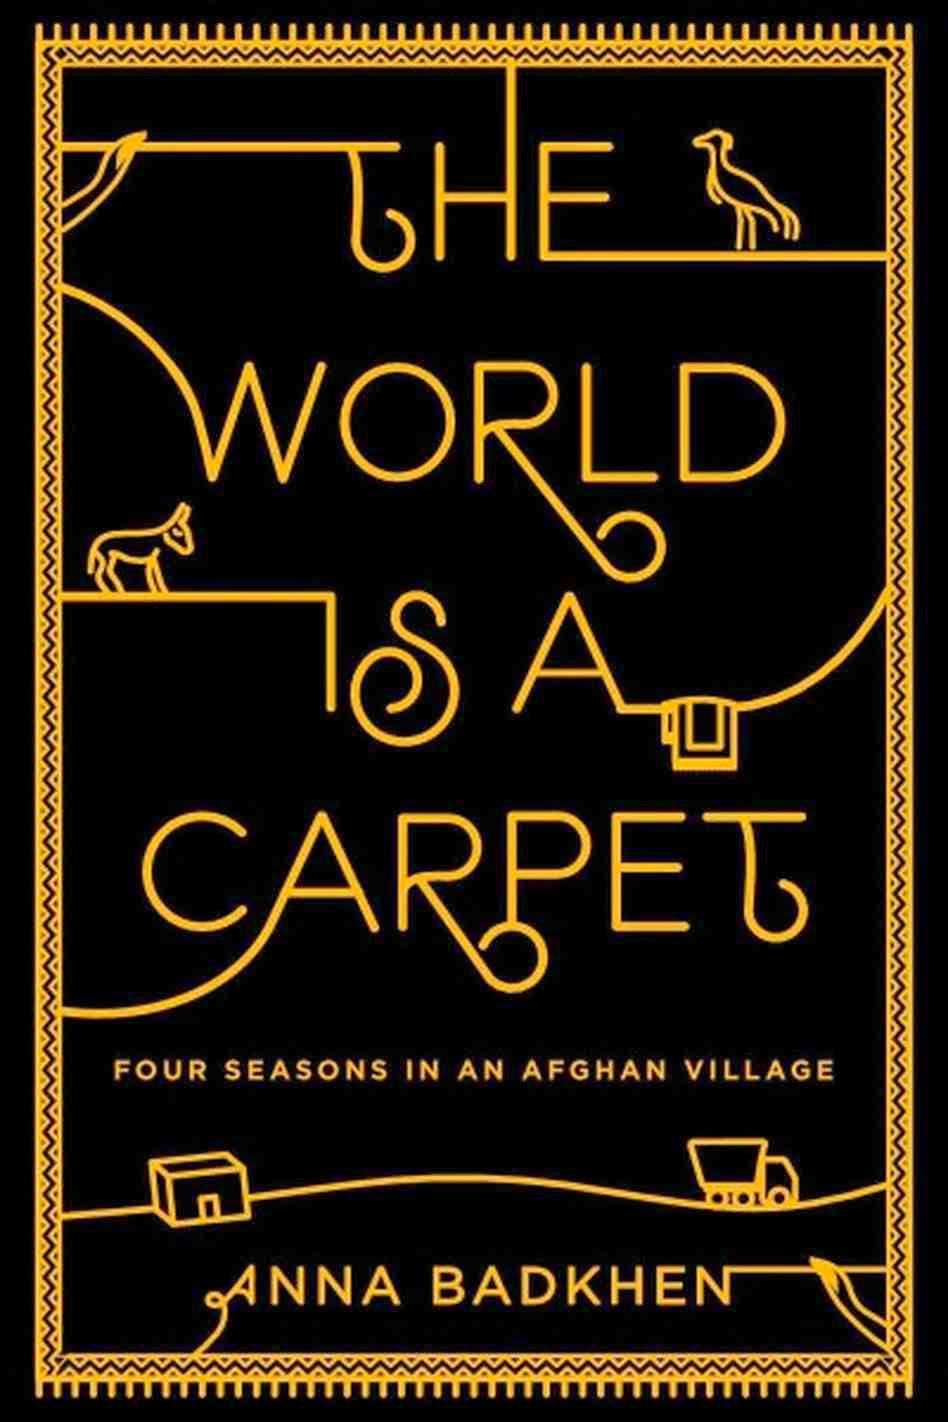 http://discover.halifaxpubliclibraries.ca/?q=title:world%20is%20a%20carpet